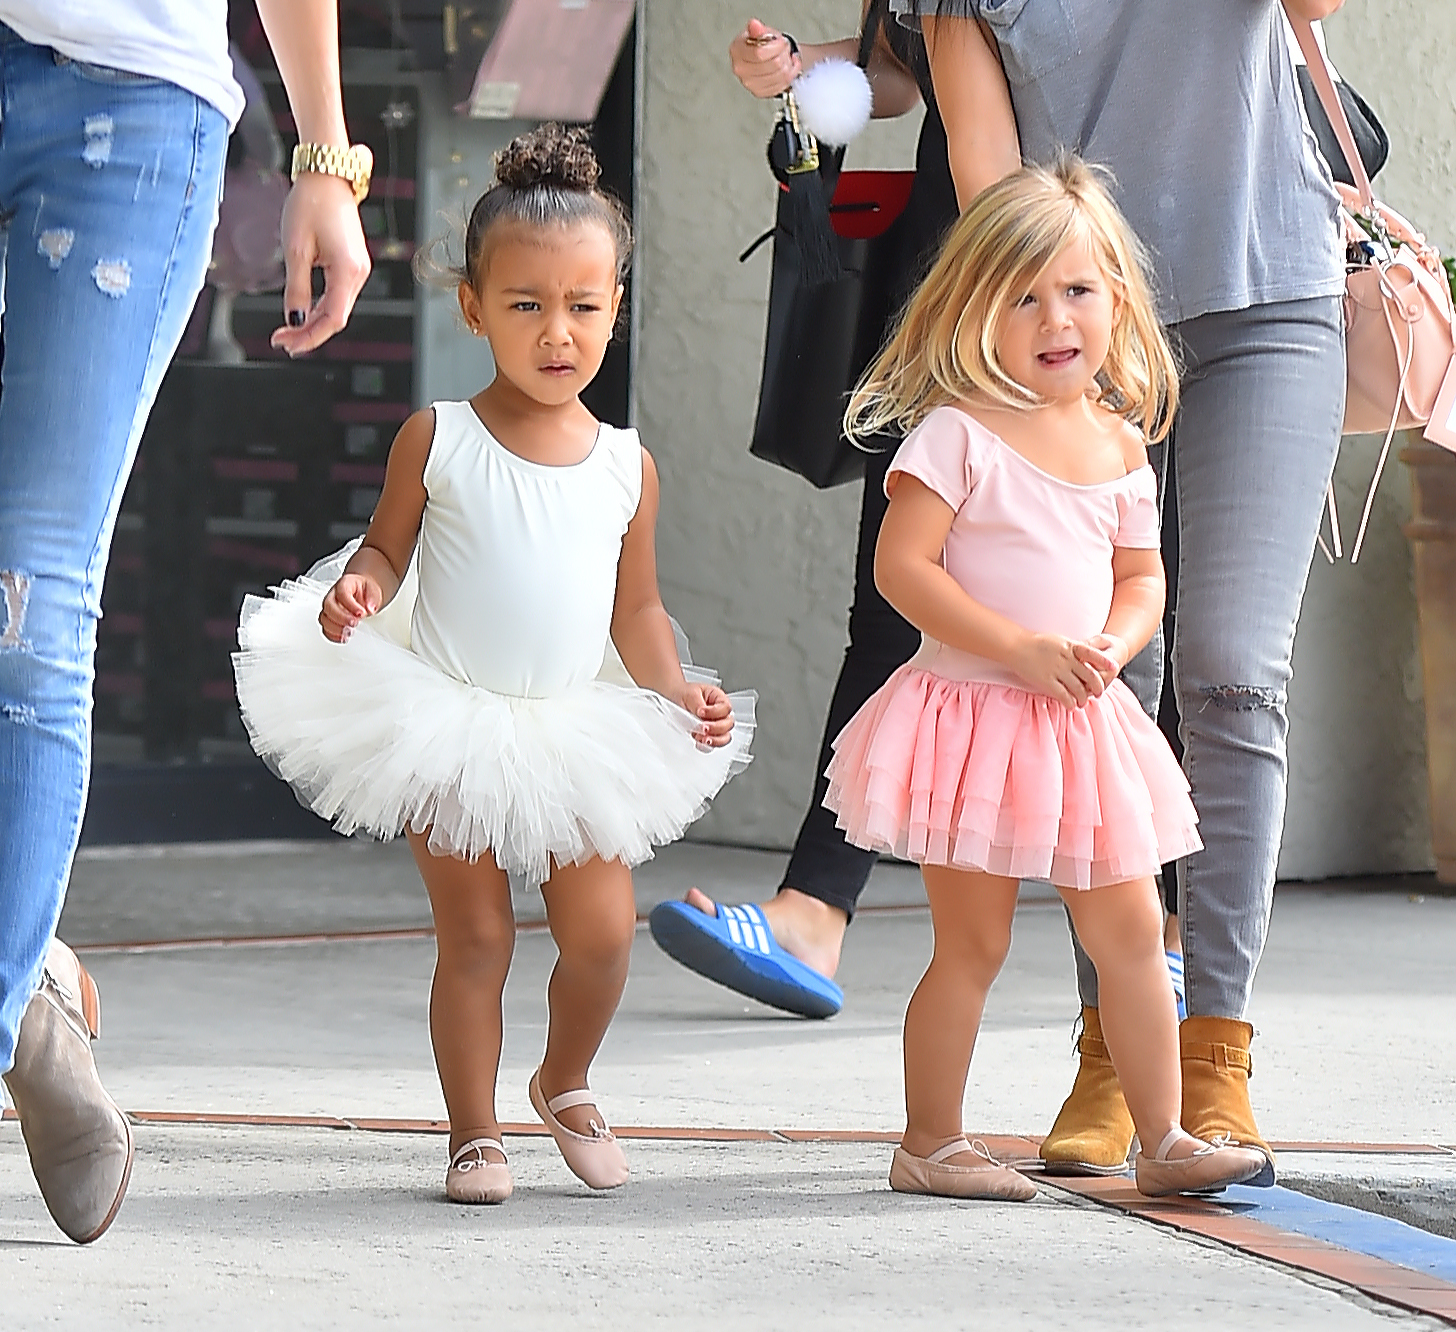 b5f4c72f8aae North West and Penelope Disick Celebrate Birthdays With Moana-Themed ...